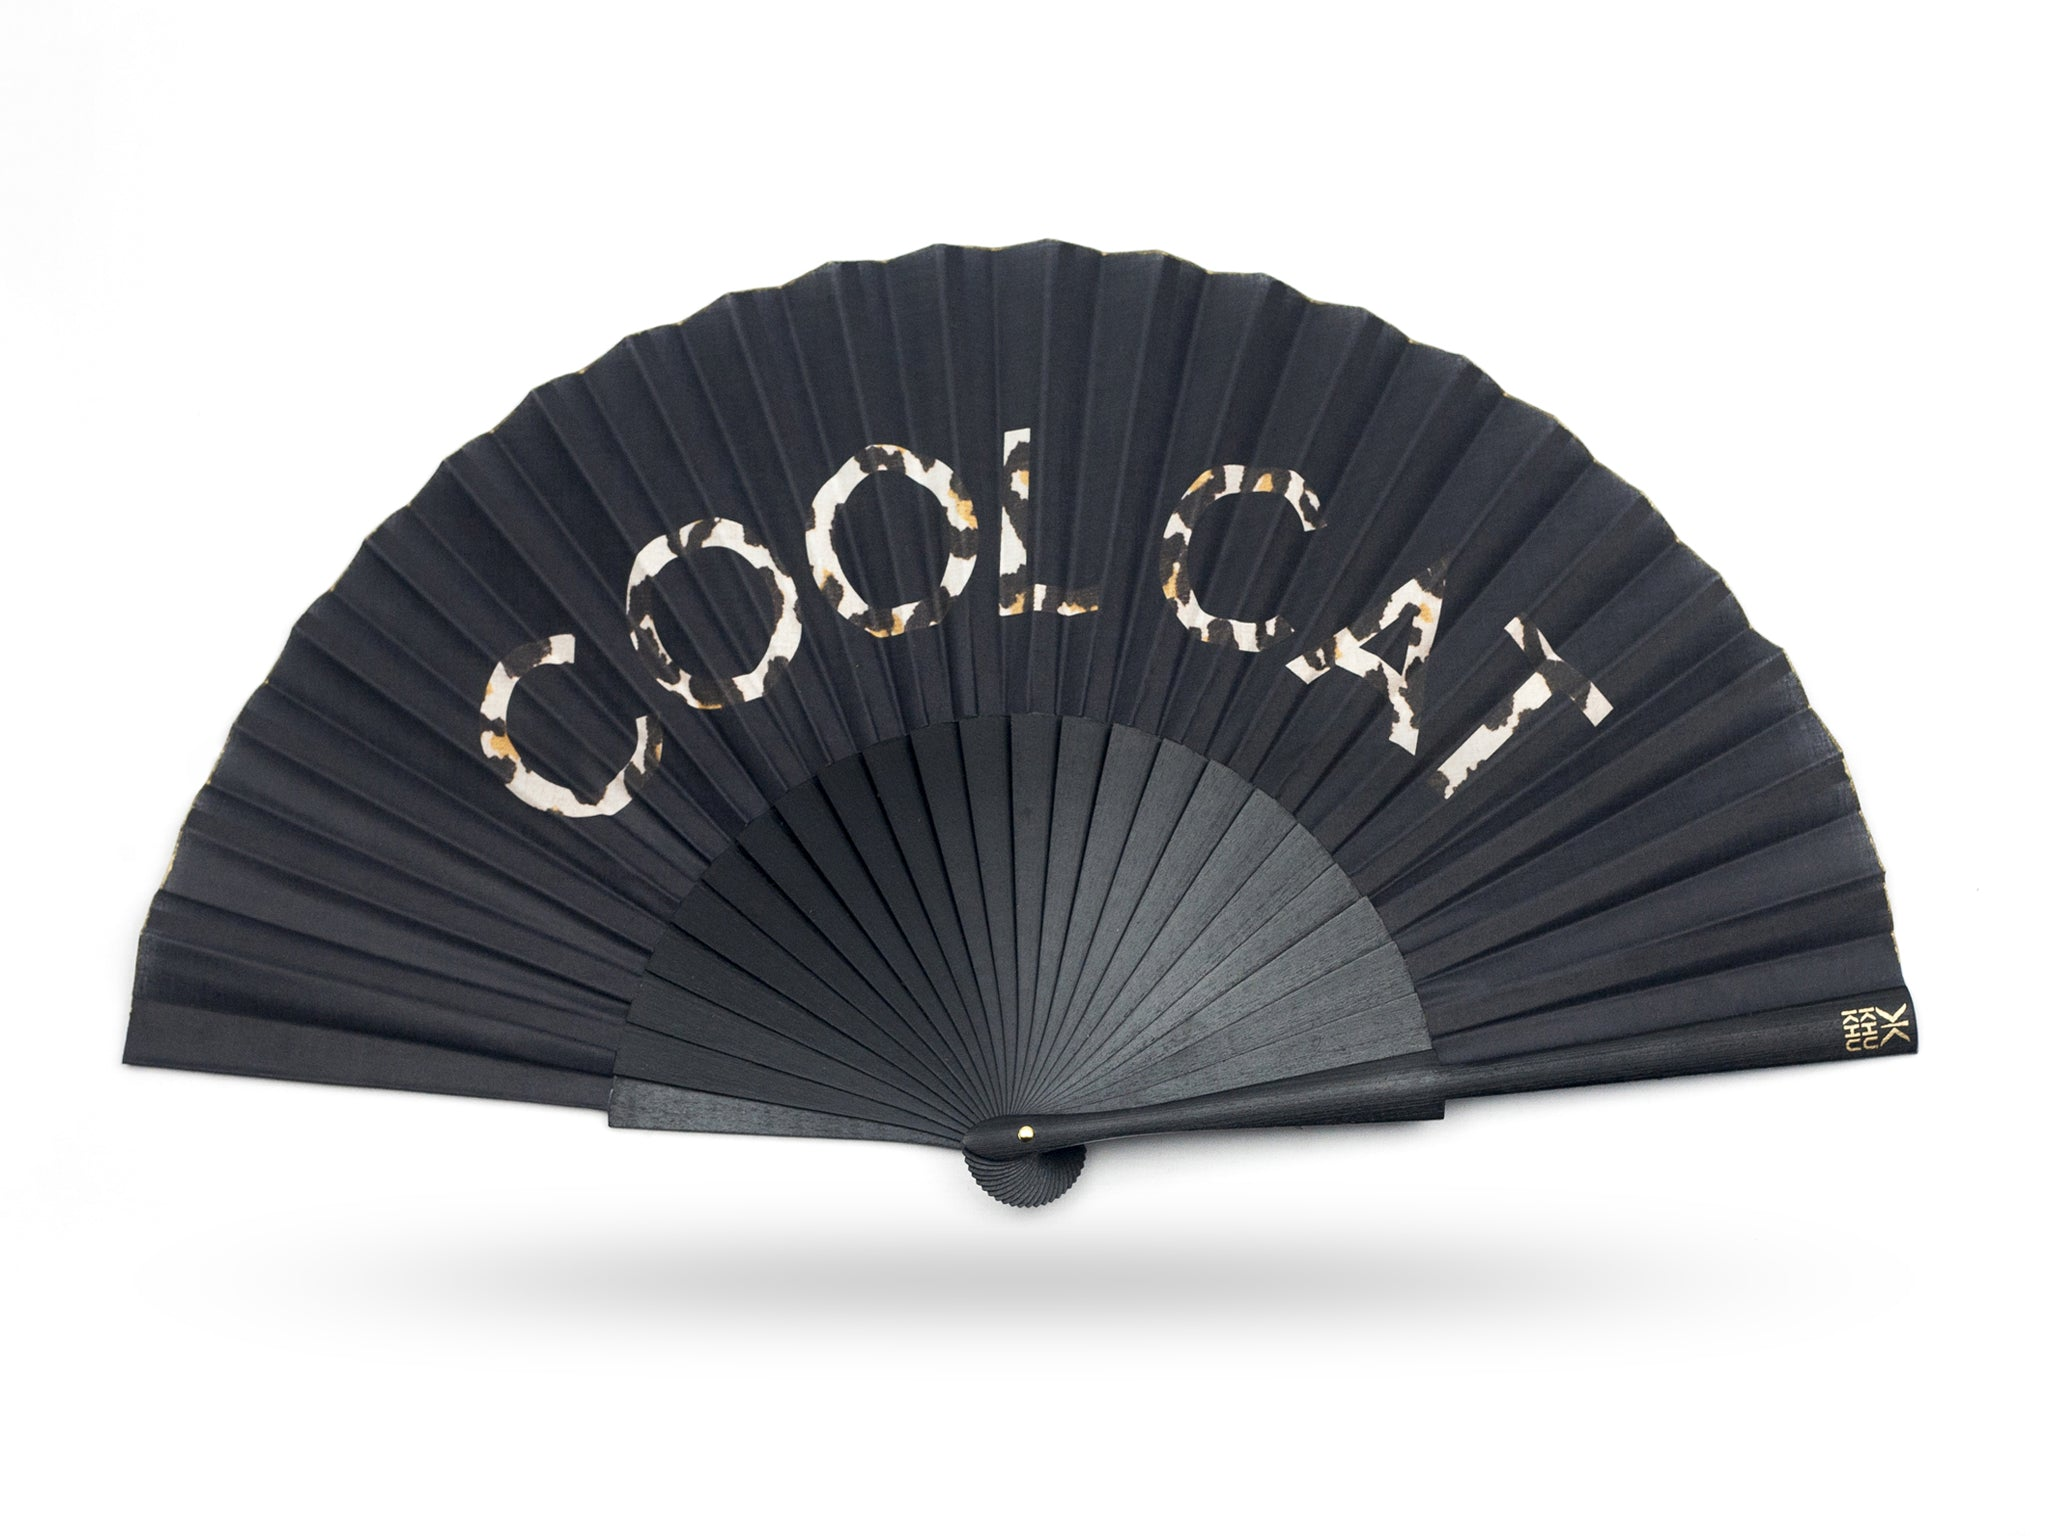 KHU KHU COOL CAT STATEMENT hand-fan with the words cool cat filled with leopard print on a black background. mounted with black wooden sticks and high grade cotton.